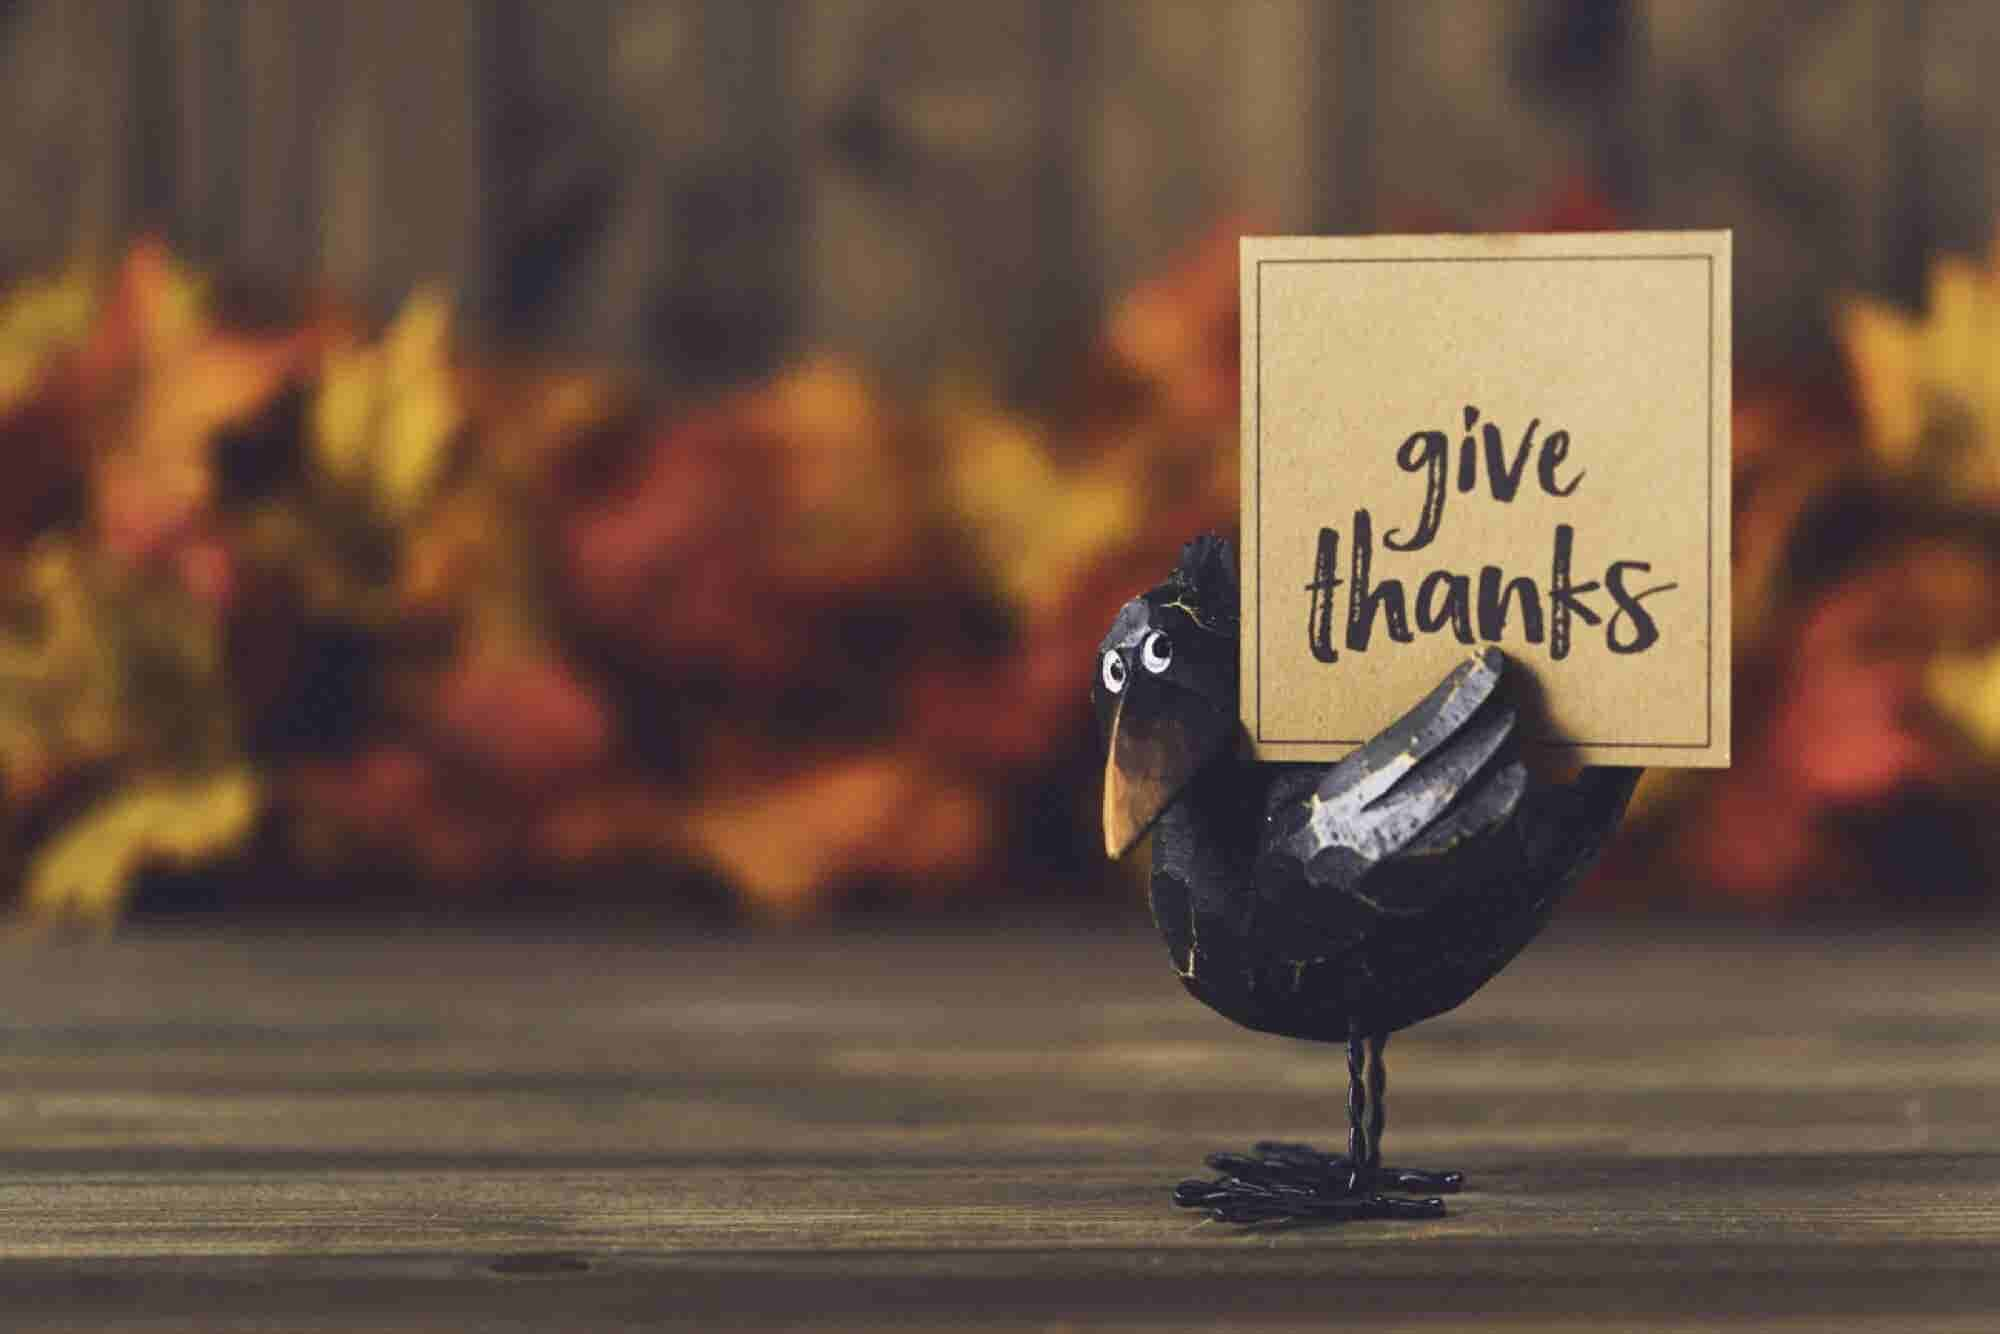 25 Entrepreneurs, Including 2 Sharks, Share What They're Thankful For